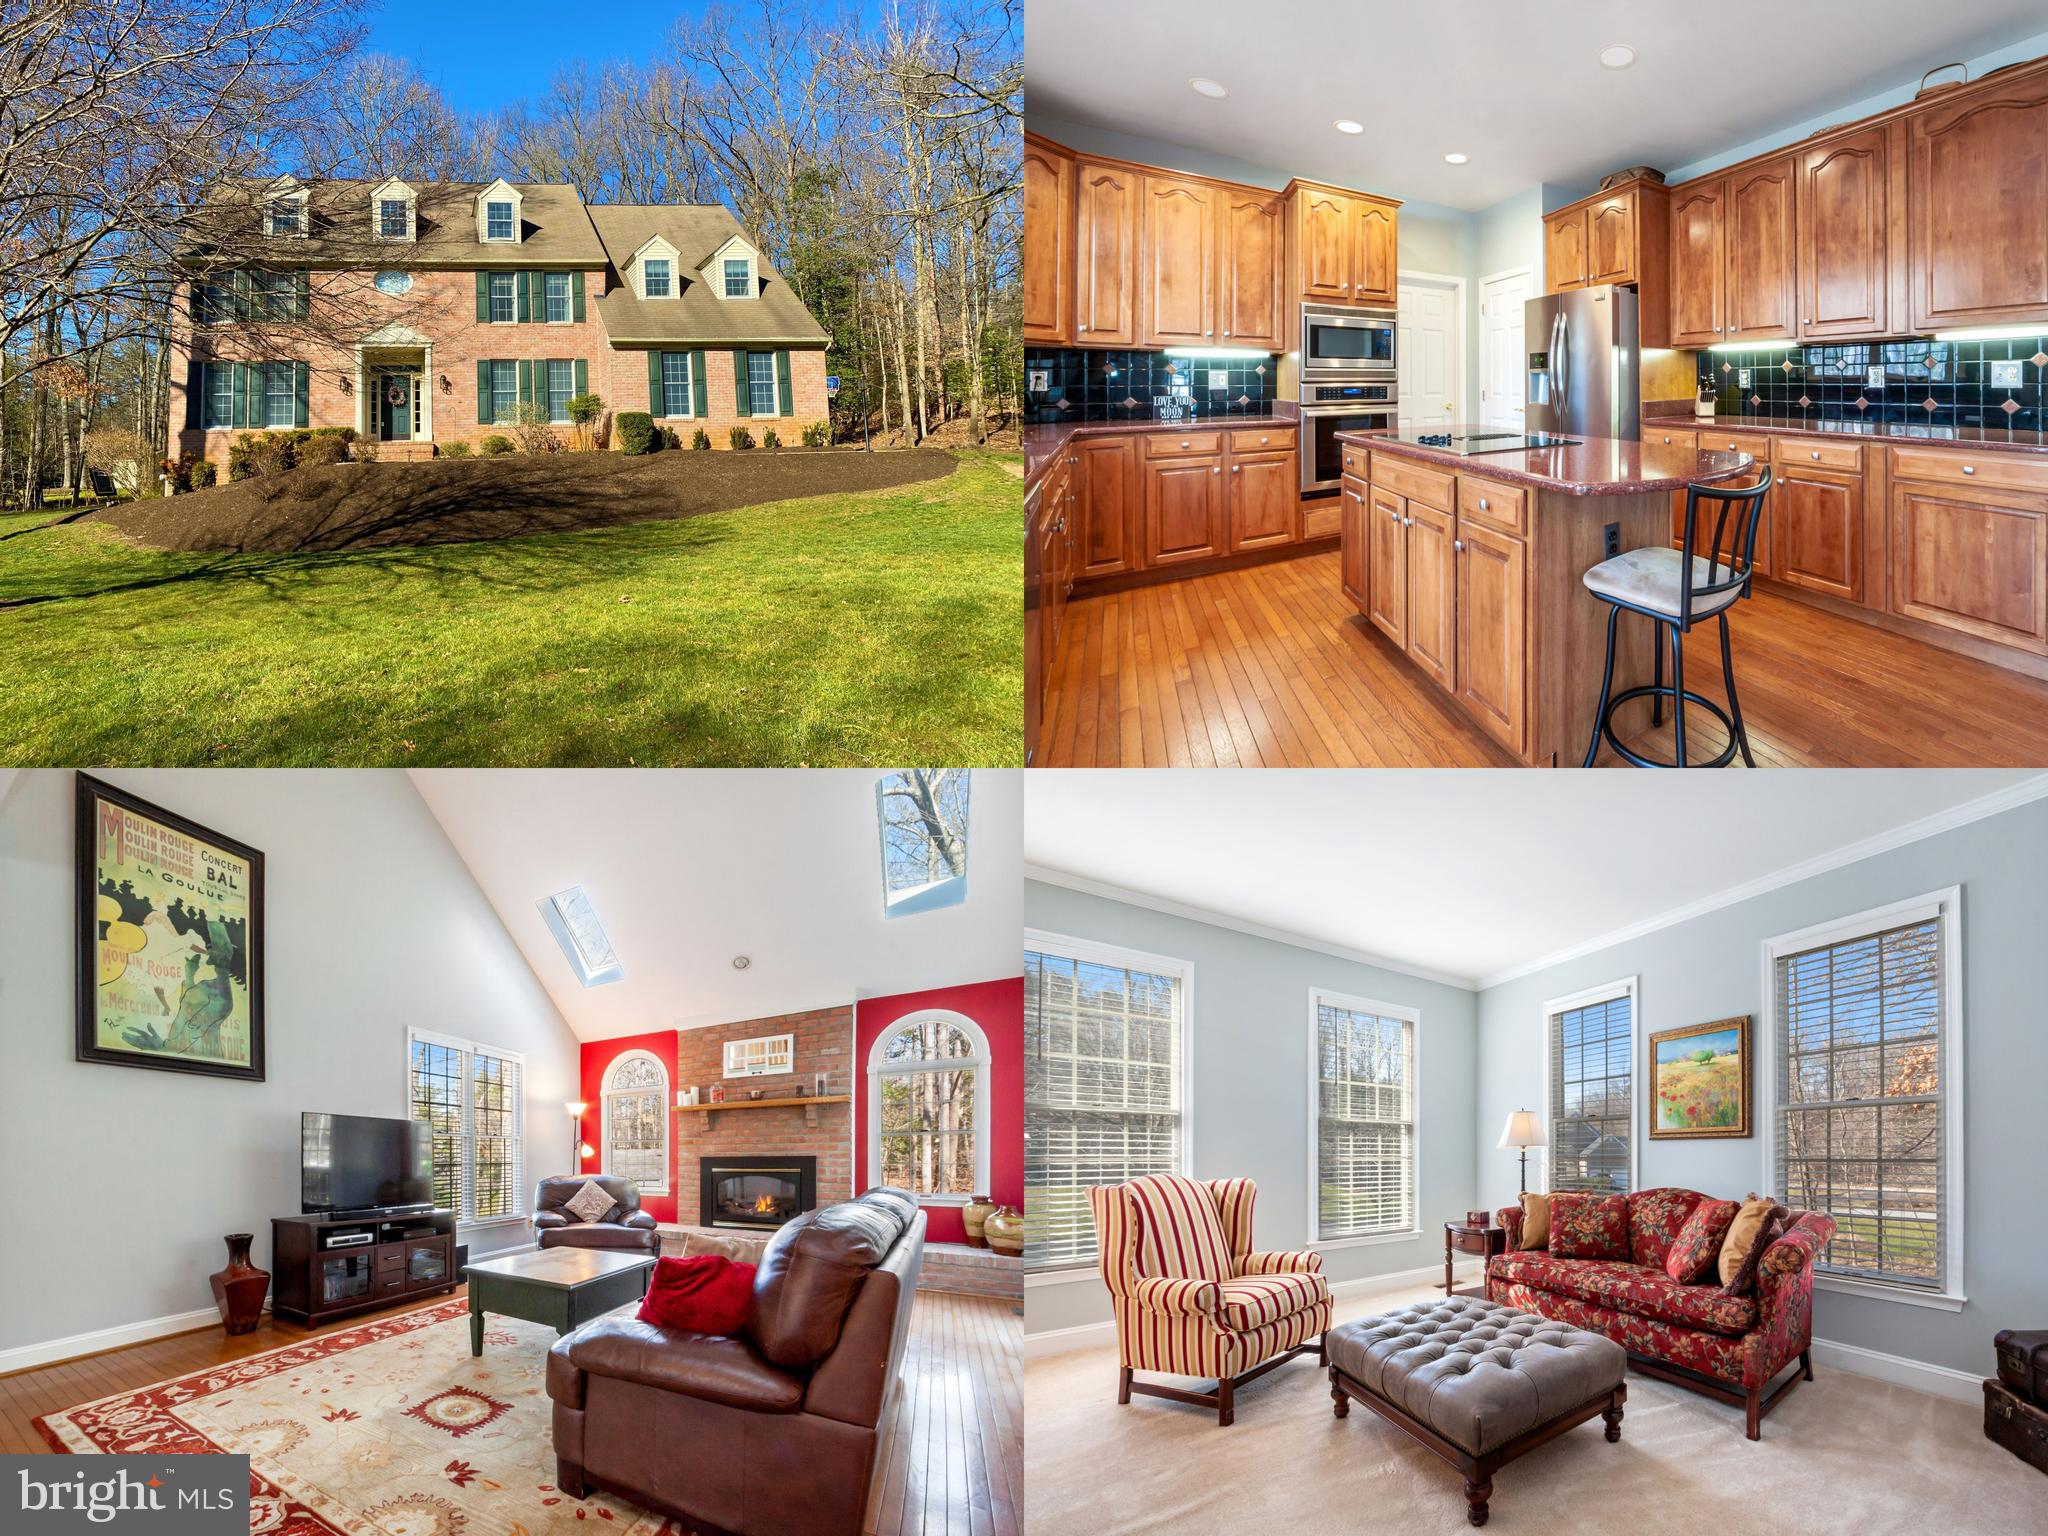 908 WILLIAM MEADE COURT, DAVIDSONVILLE, MD 21035